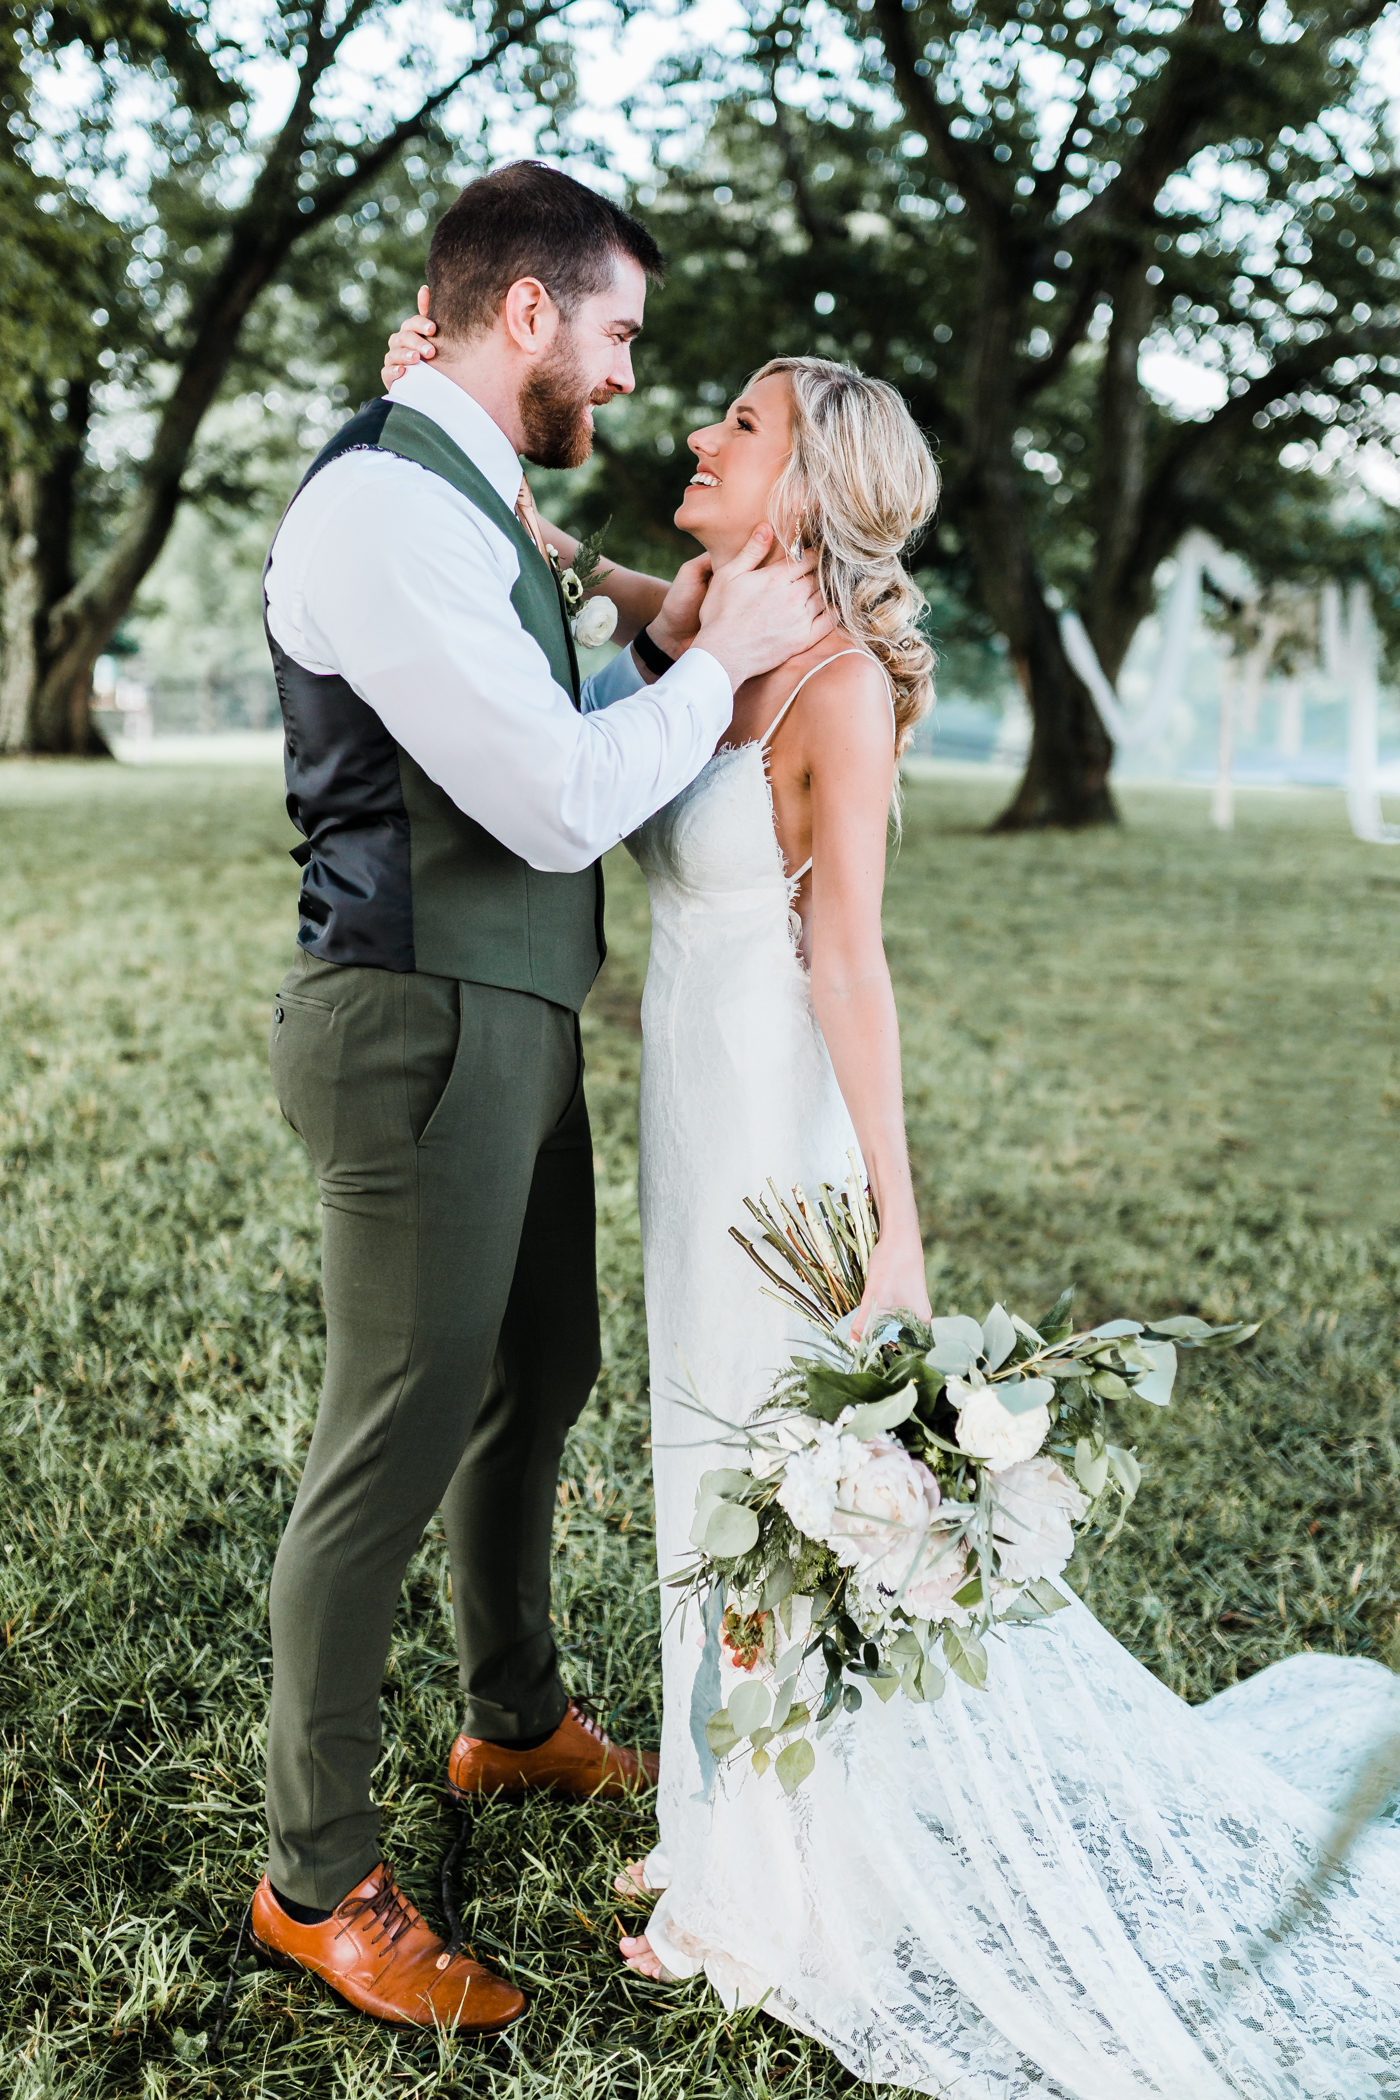 free form bouquet ideas - green and gold wedding ideas - maryland wedding photographer - romantic wedding gown